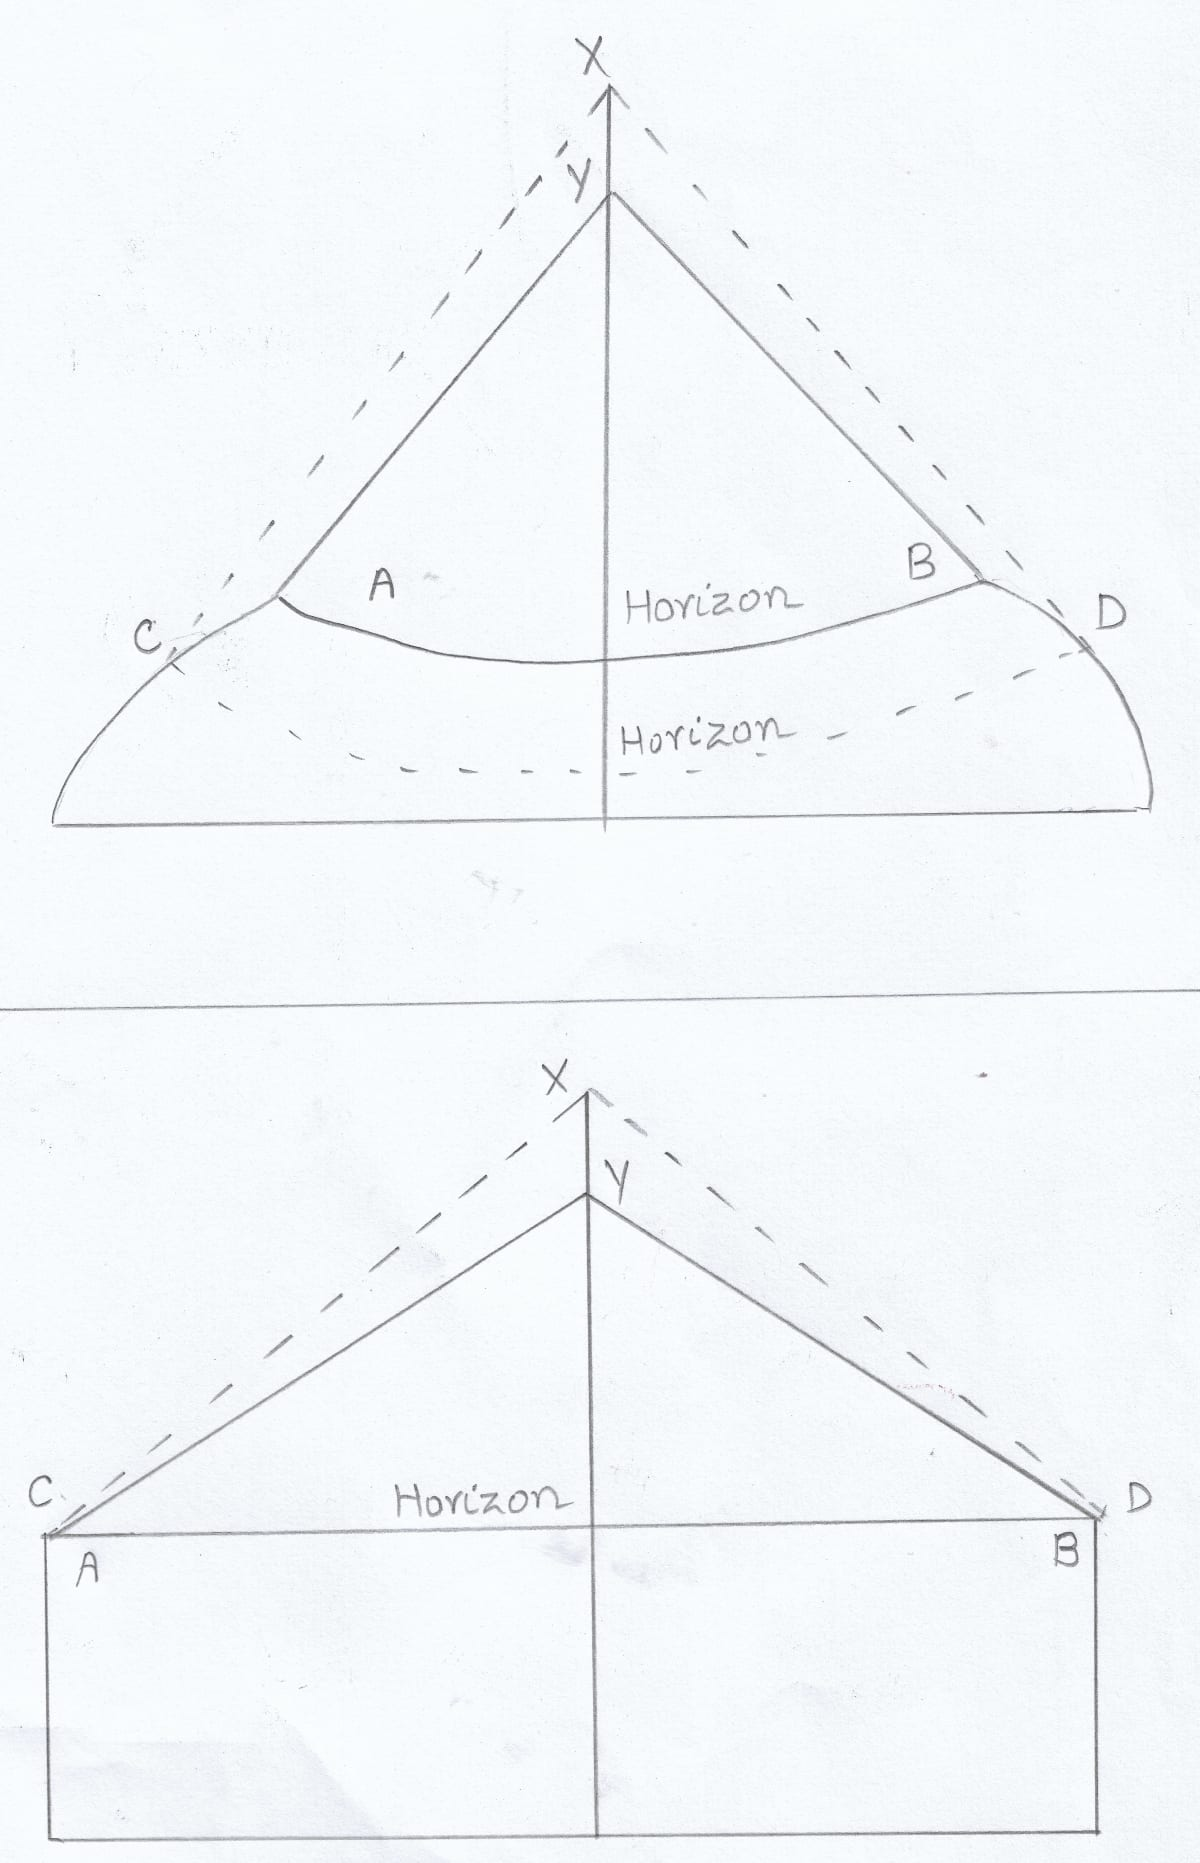 Draw a well labelled diagram to show that the horizon of the earth is circular in shape. Total Geography ICSE Class 9